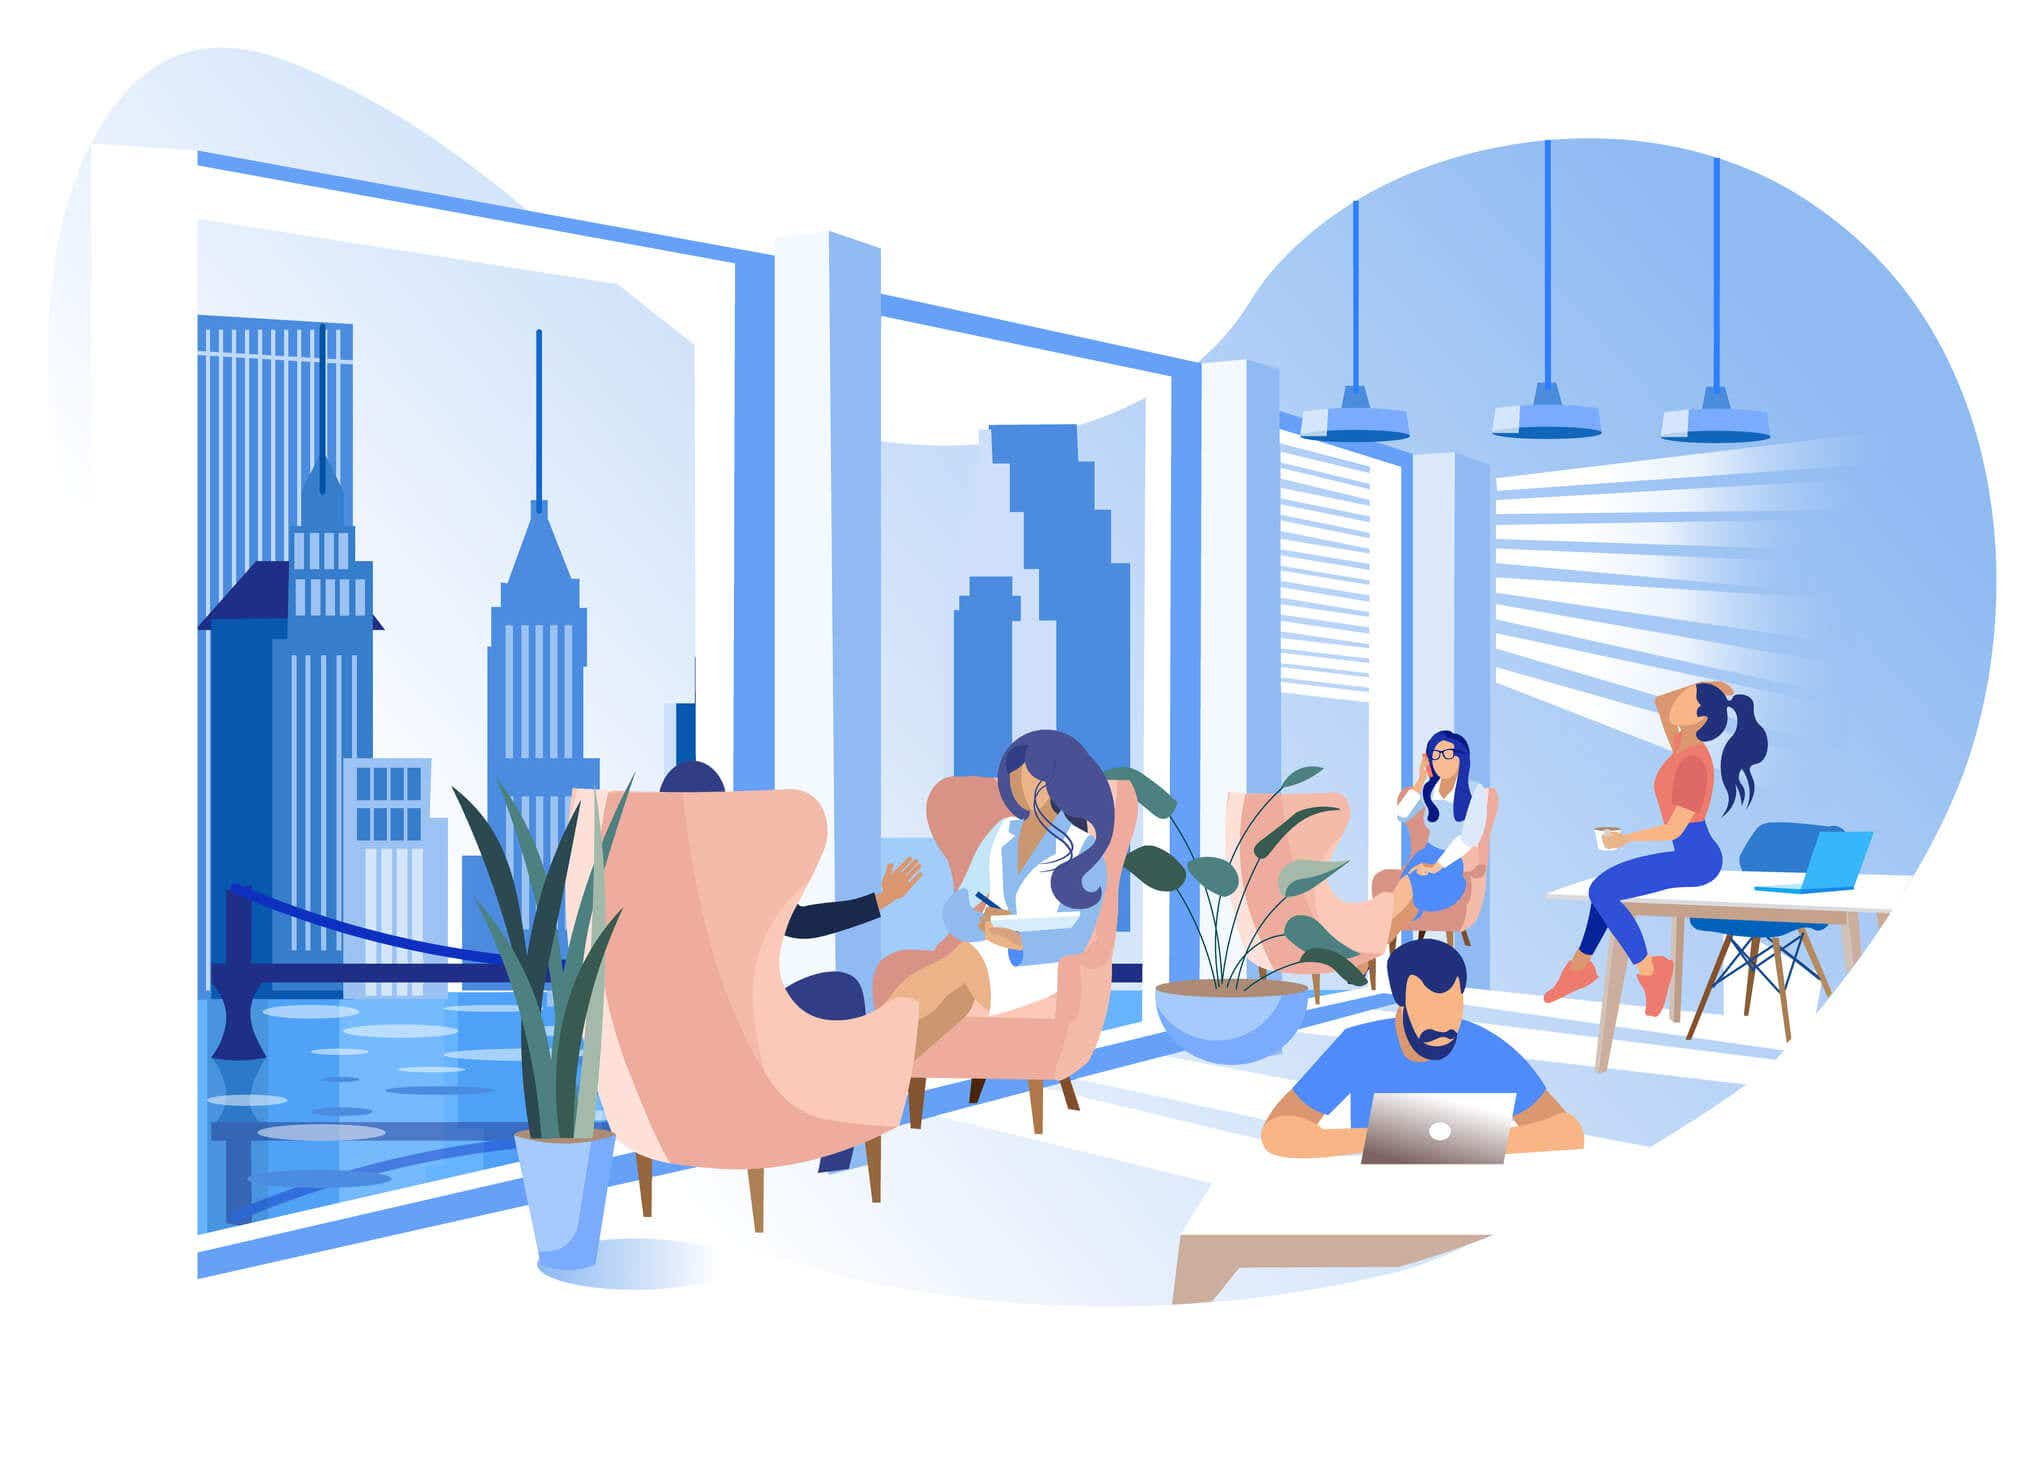 Cover photo for WeWork and the future of coworking spaces